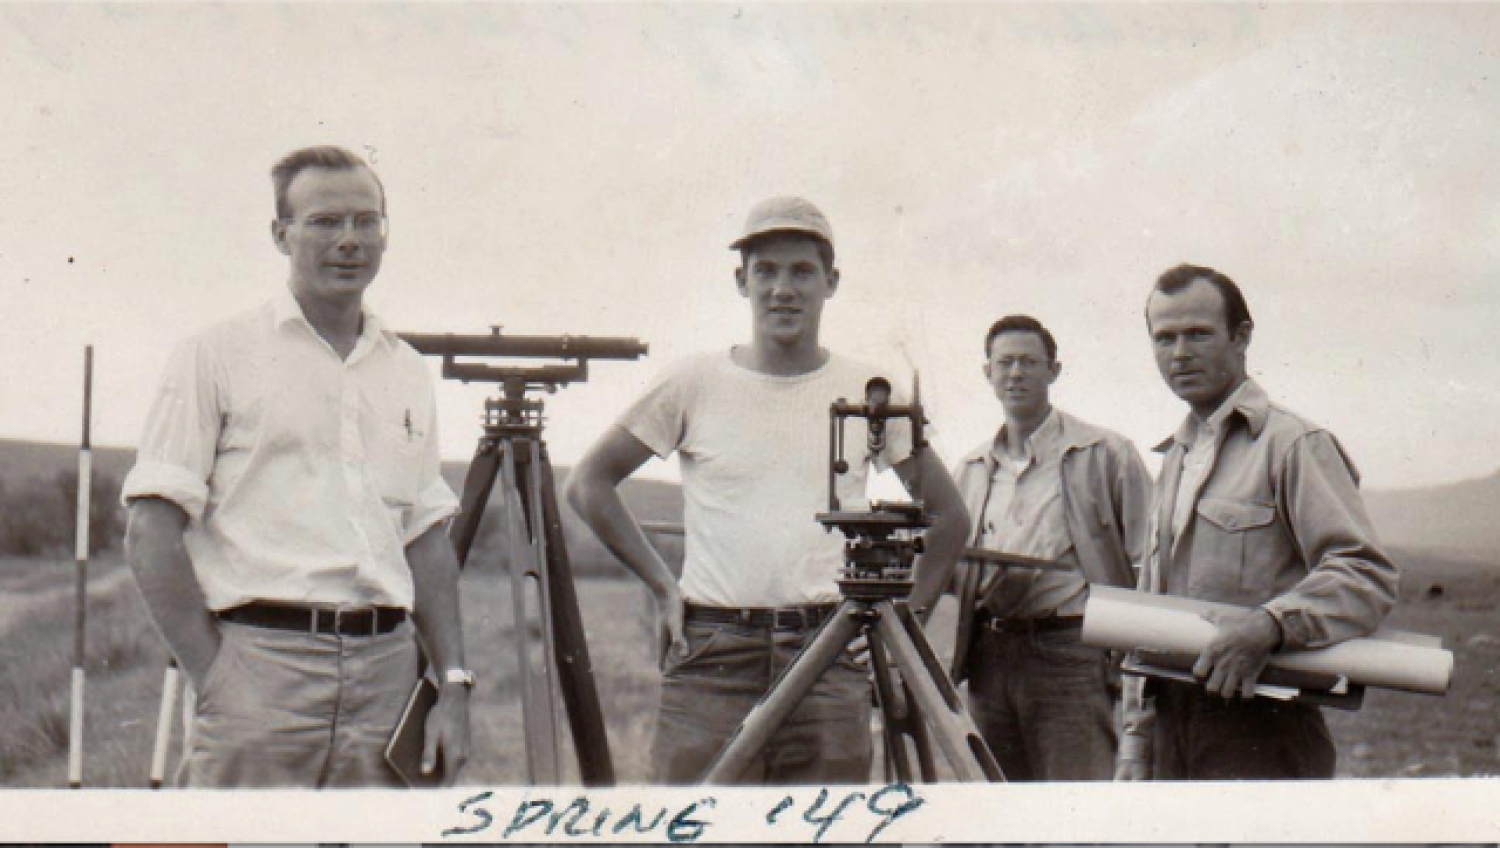 Four students standing with surveying equipment